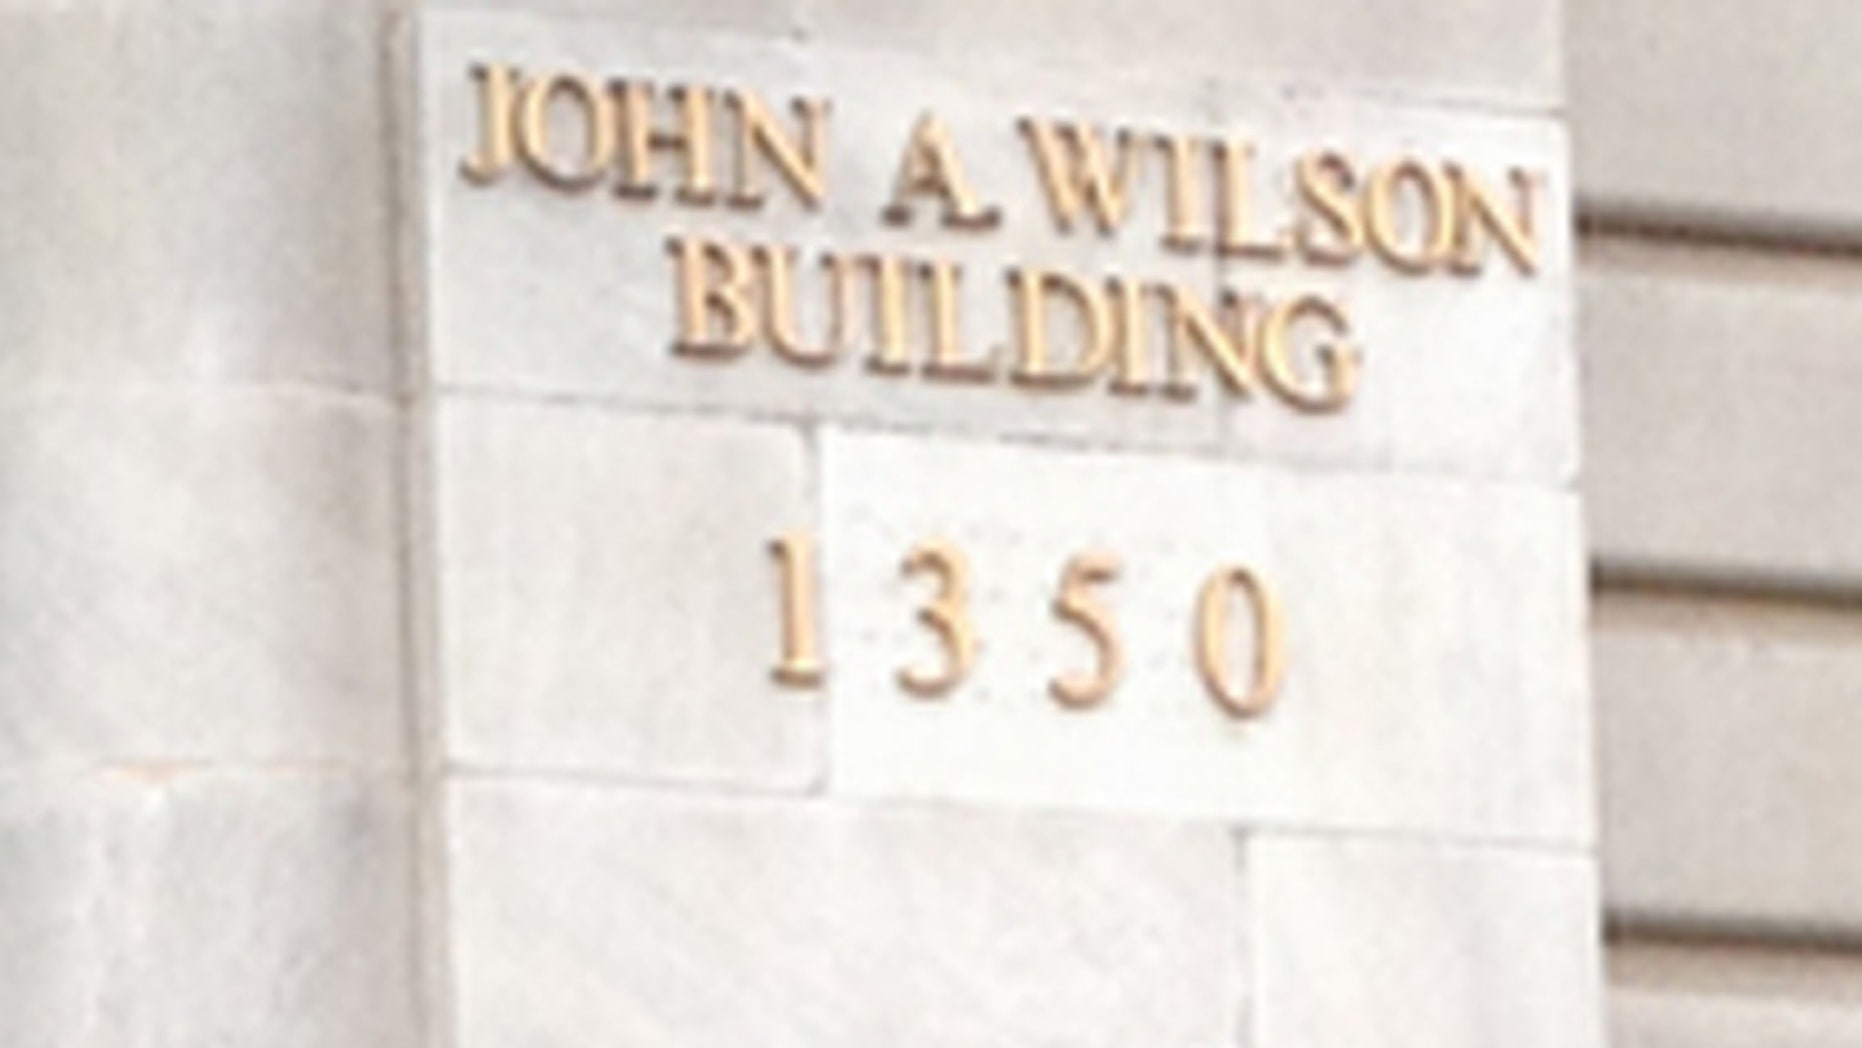 FILE: 2014: John A. Wilson Building, the District of Columbia's city hall, in Washington, D.C.